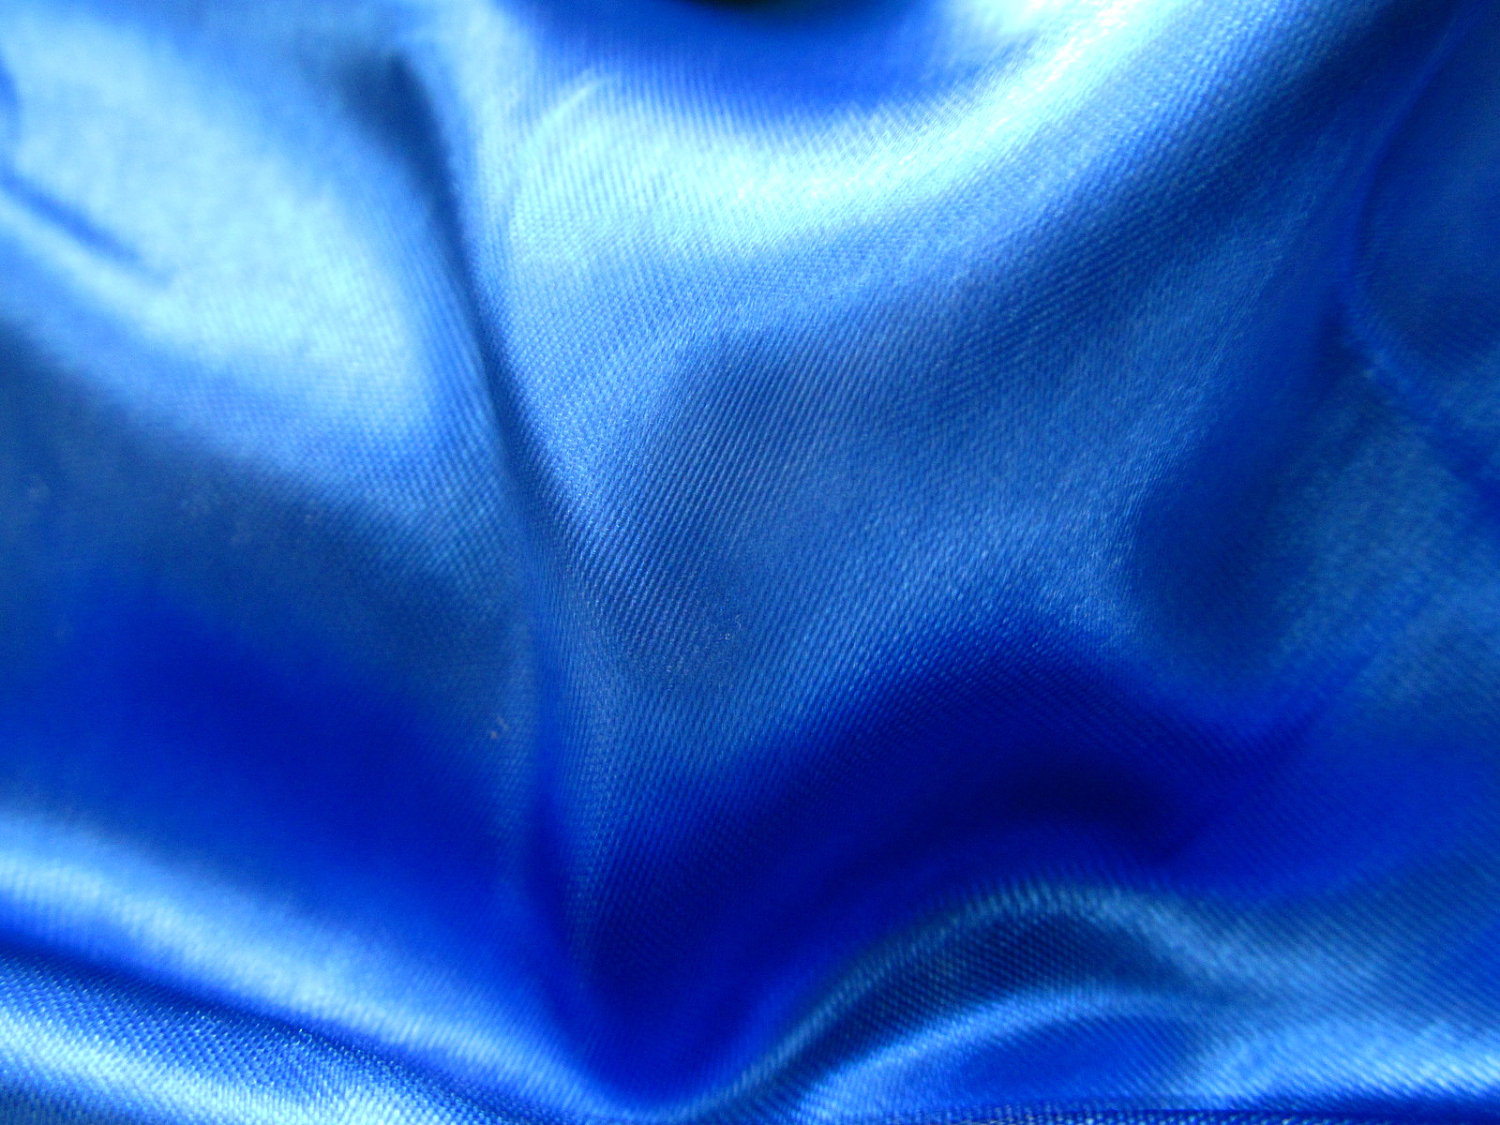 Blue Satin Wallpaper Wallpapersafari